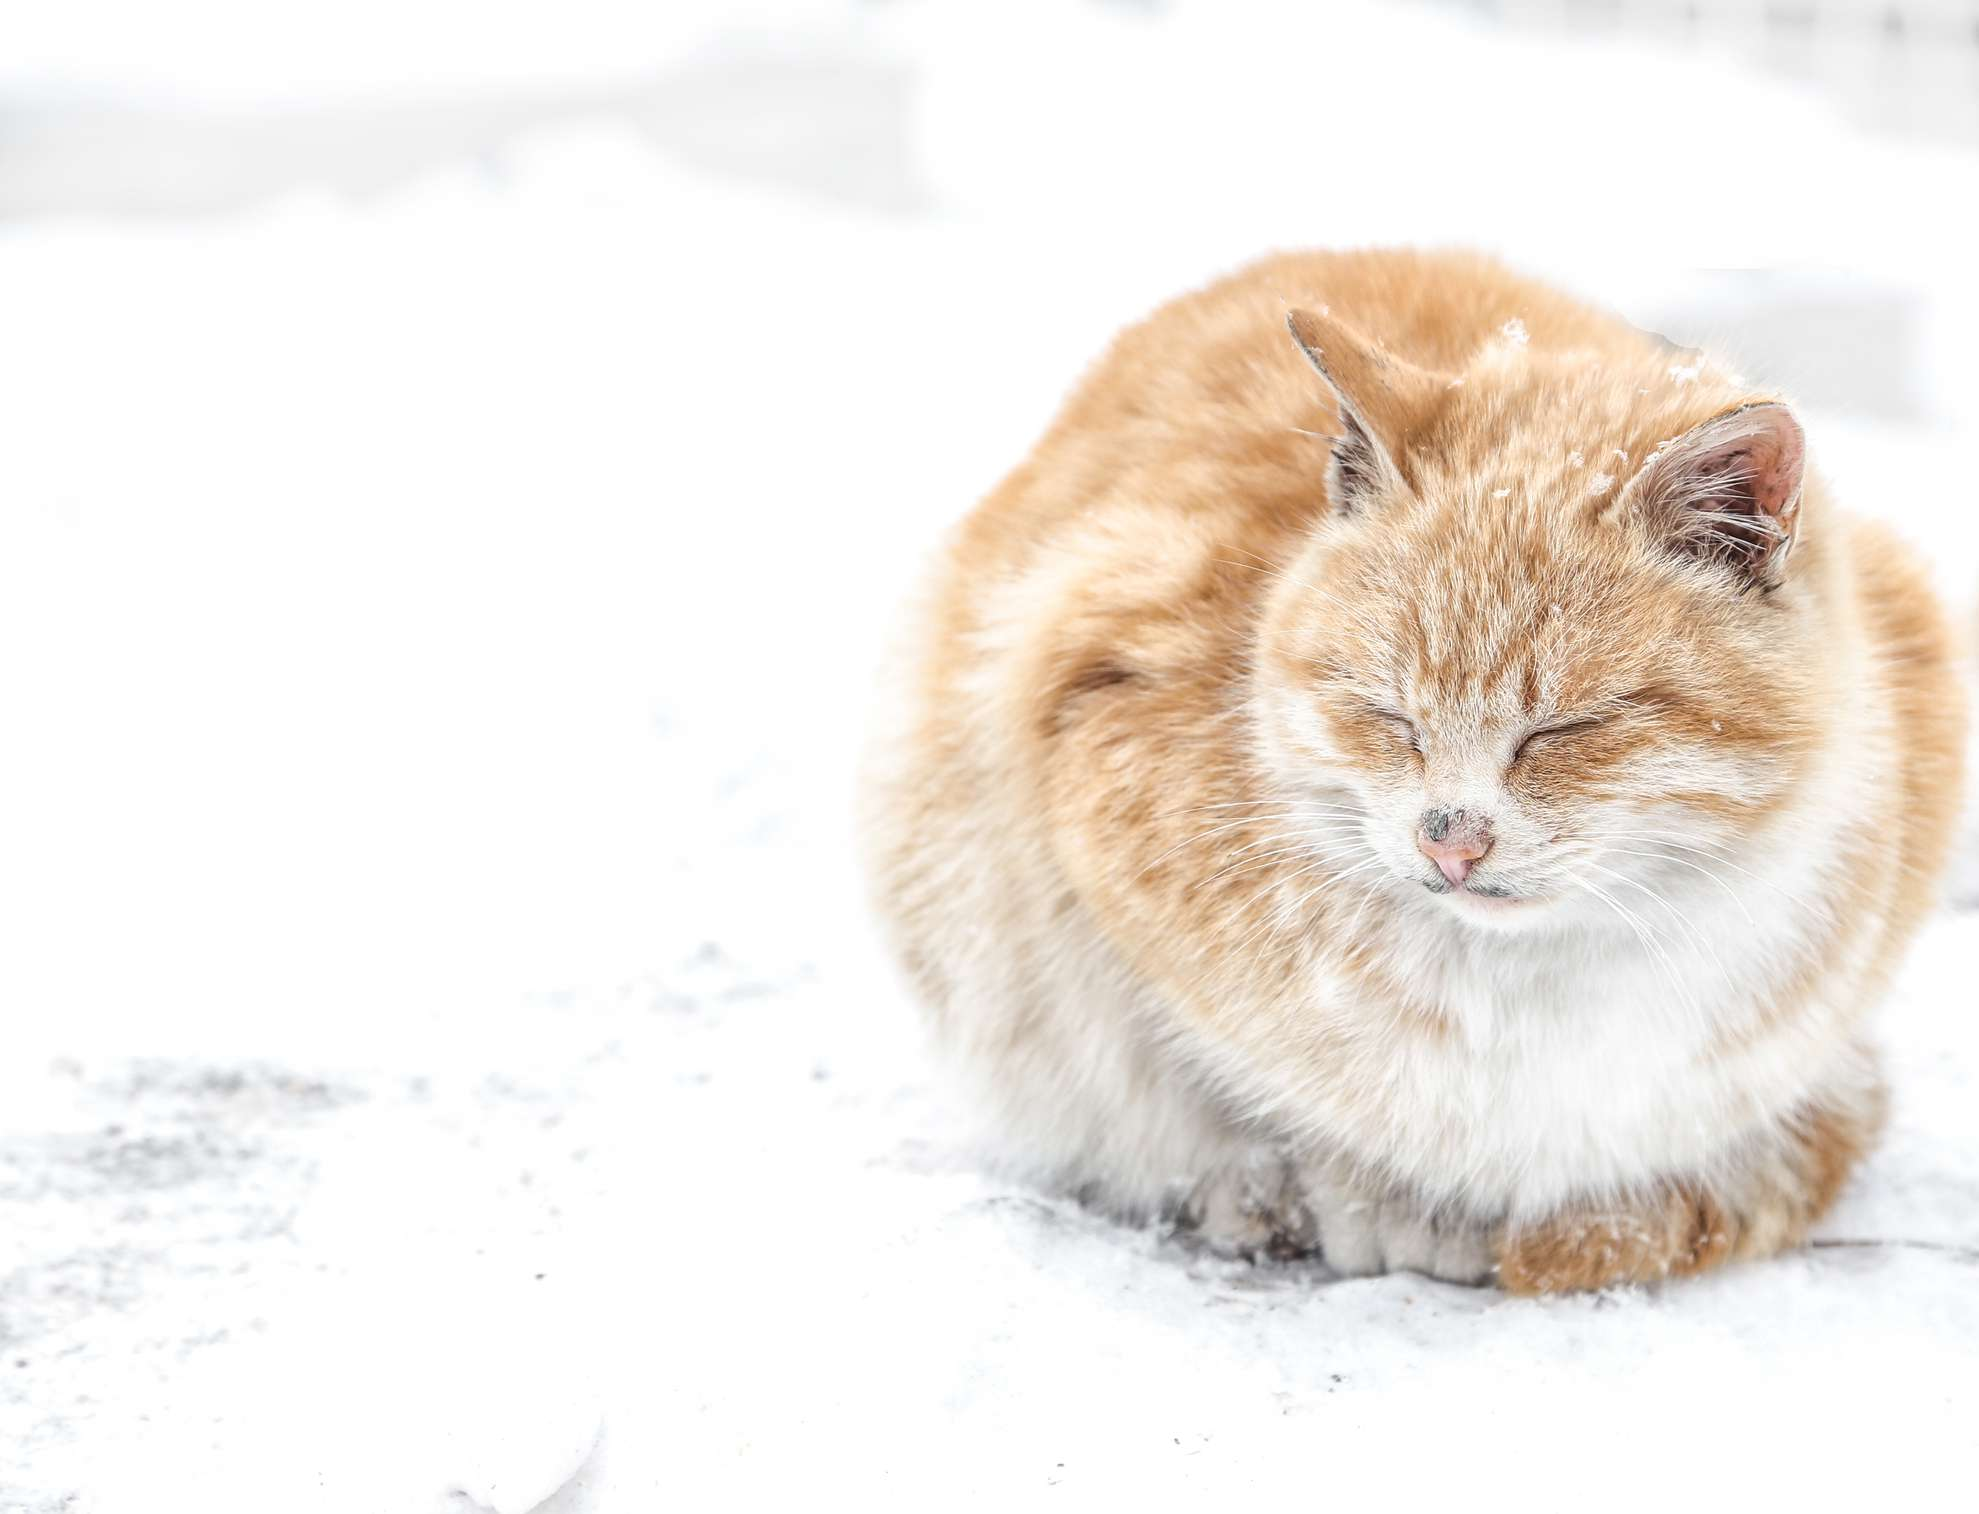 An orange cat with no tail huddled up in the snow.